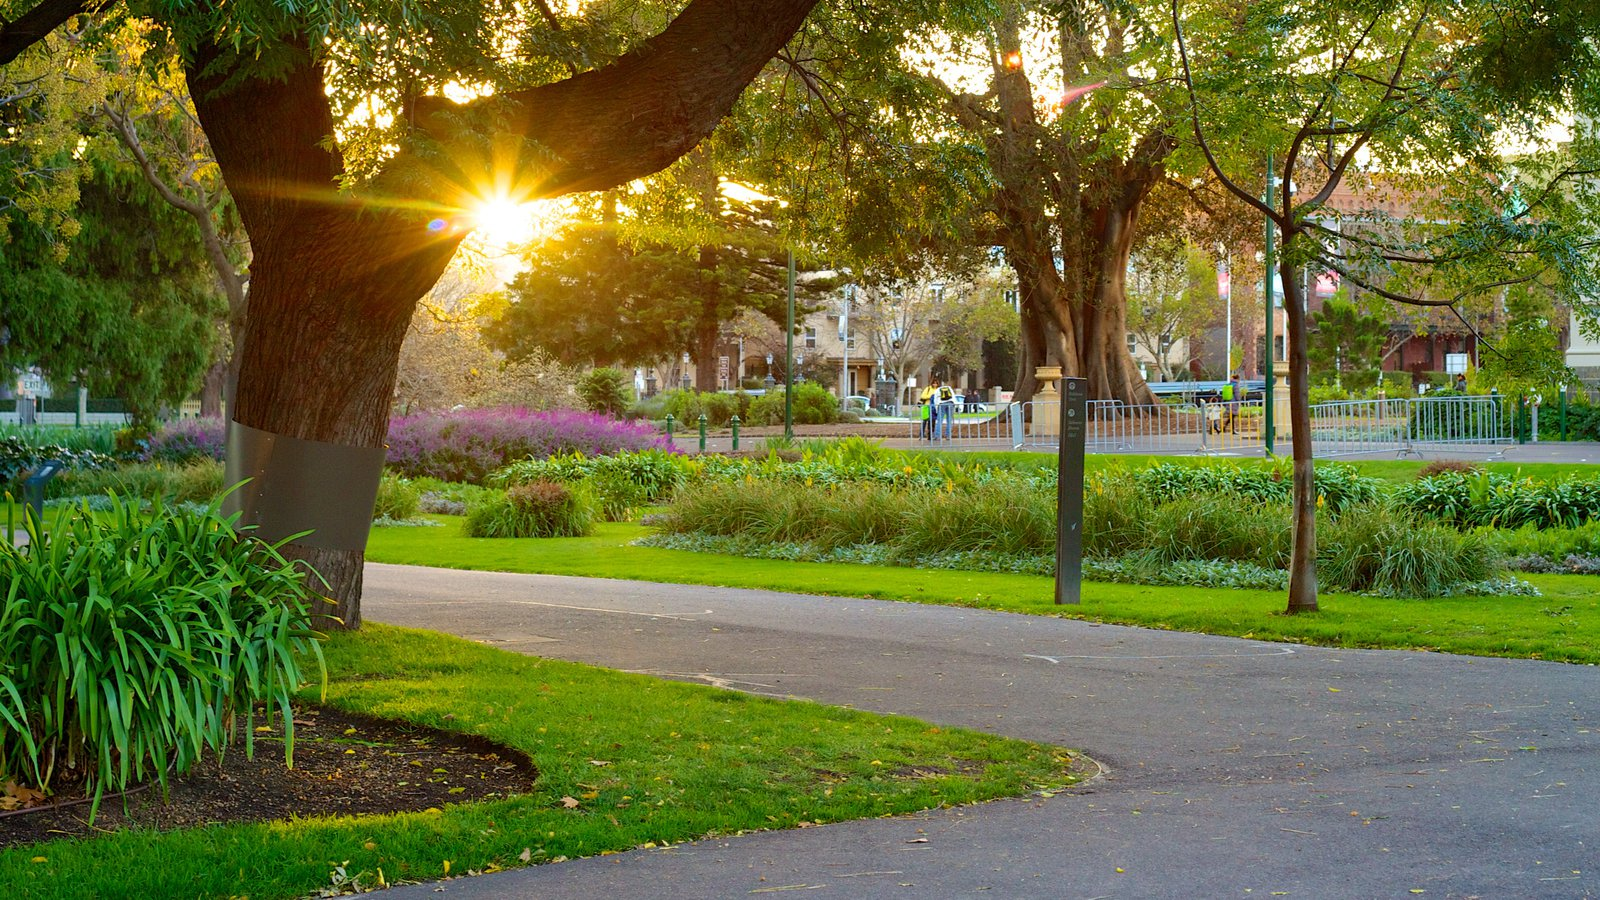 Carlton Gardens showing a garden and a sunset